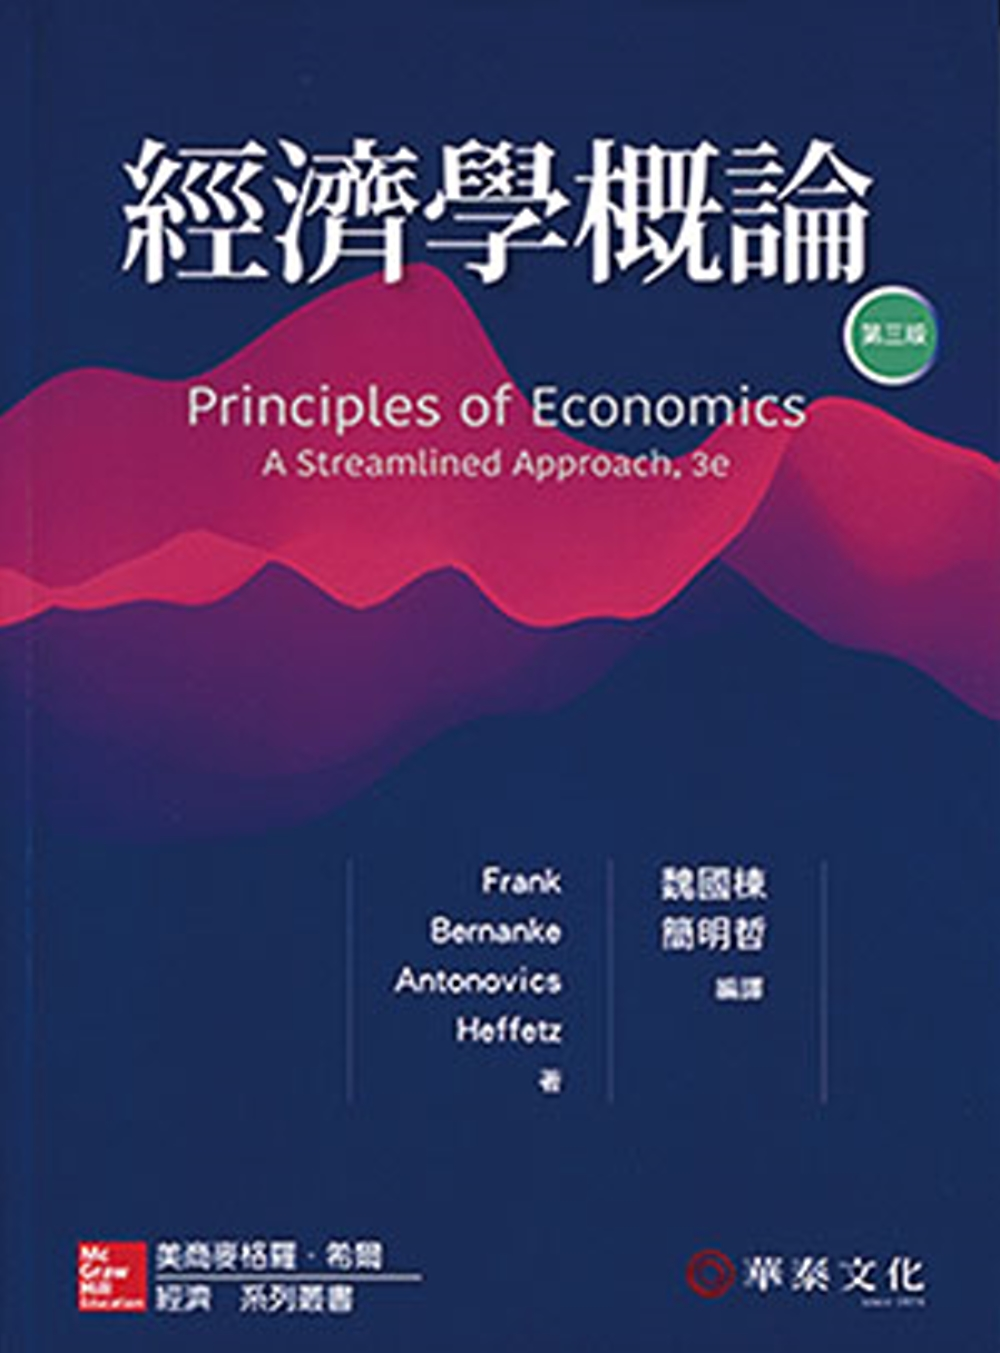 經濟學概論(Frank/Principles of Economics: A Streamlined Approach 3e)(三版)